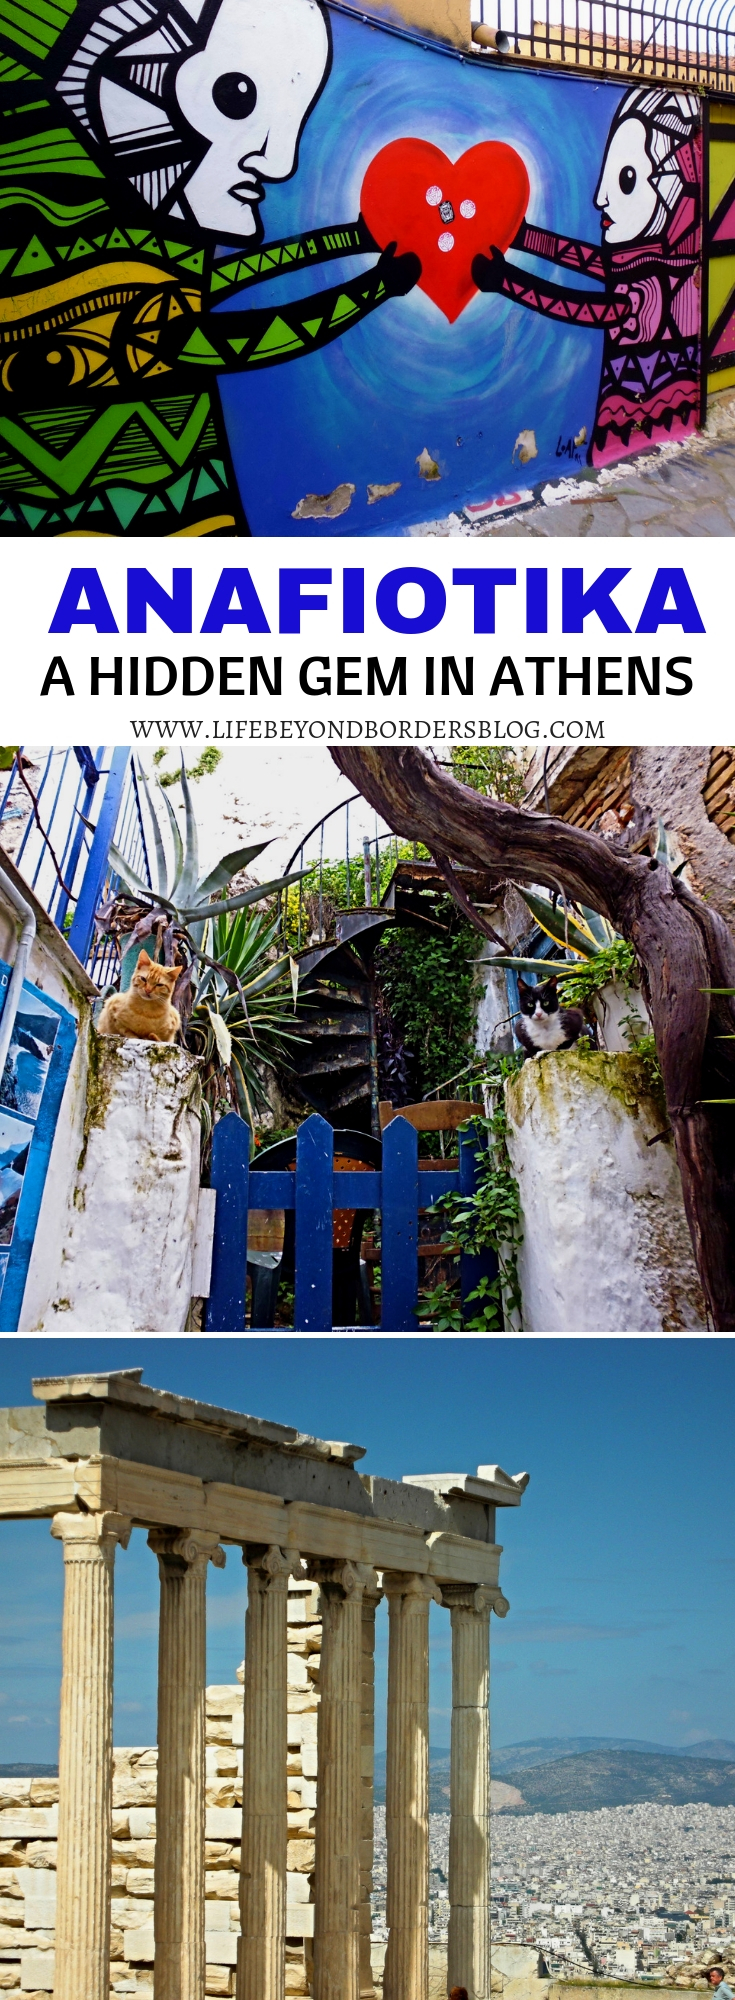 Come and discover Anafiotika - A Hidden Gem in Athens, Greece